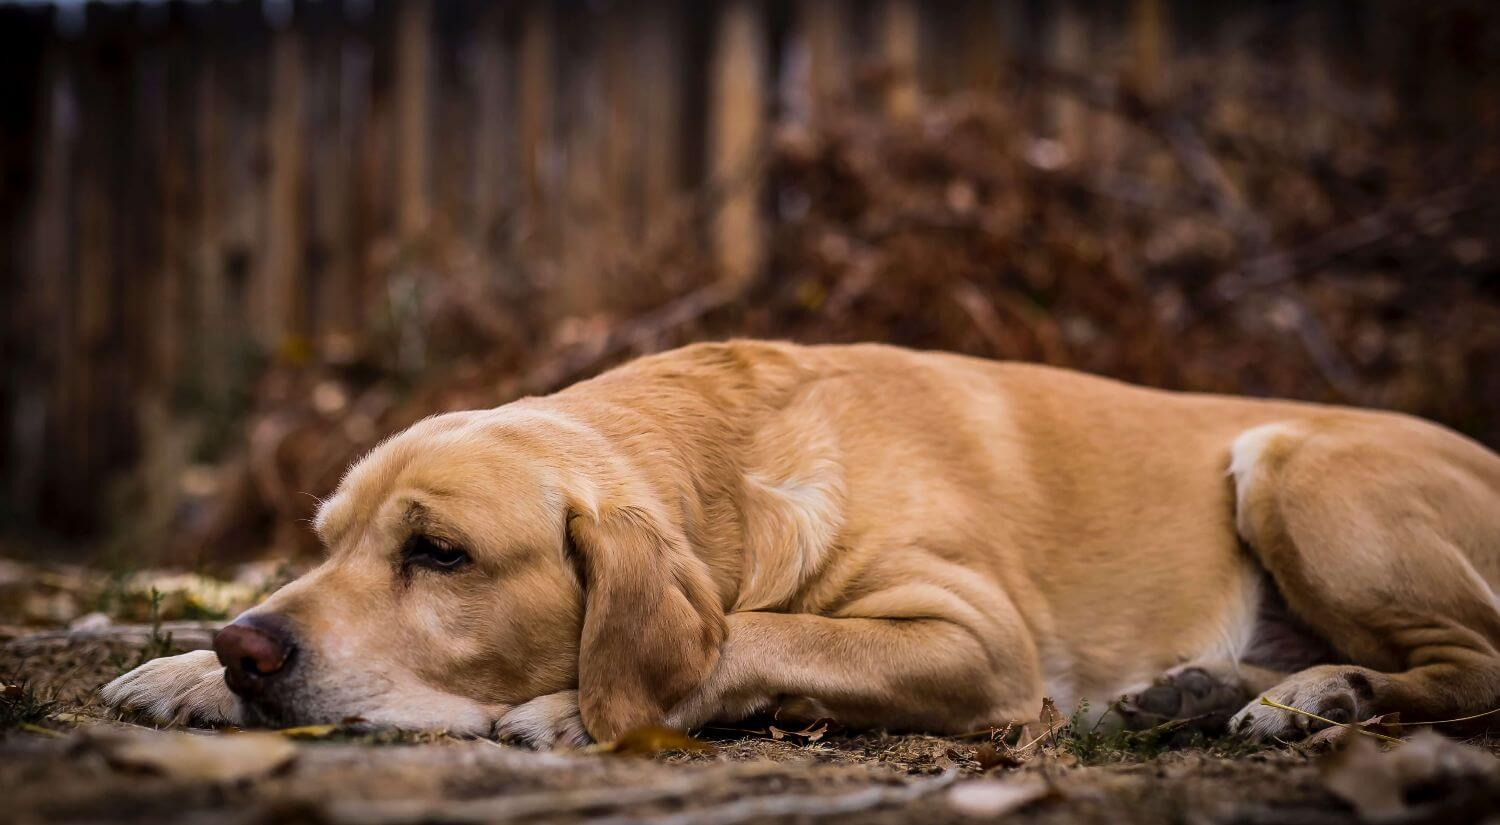 How do I know if my dog is overweight?